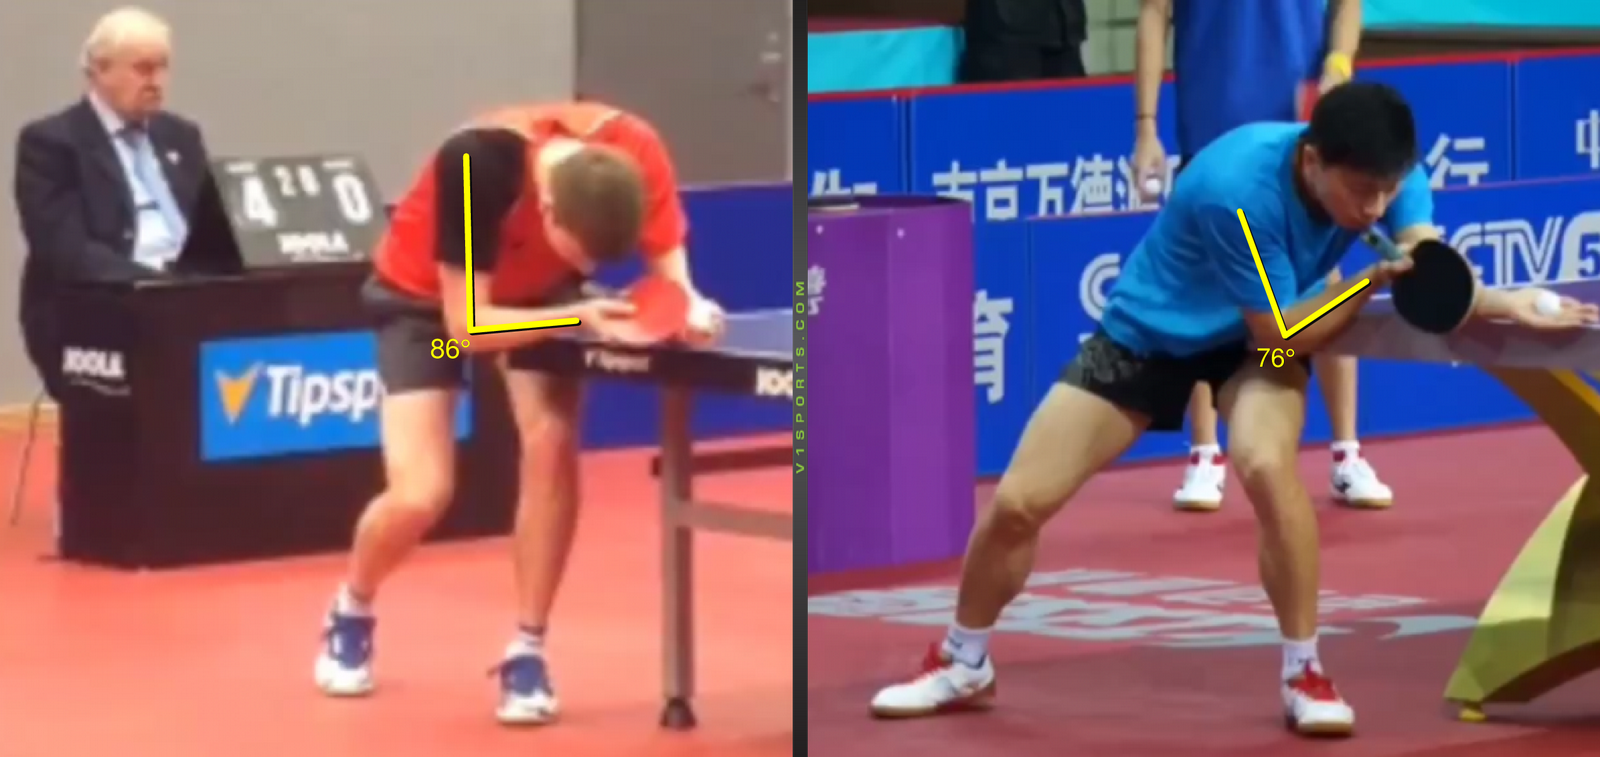 Serve Analysis, Basic Position, Playing Hand Position – D. Reitšpies vs Ma Long